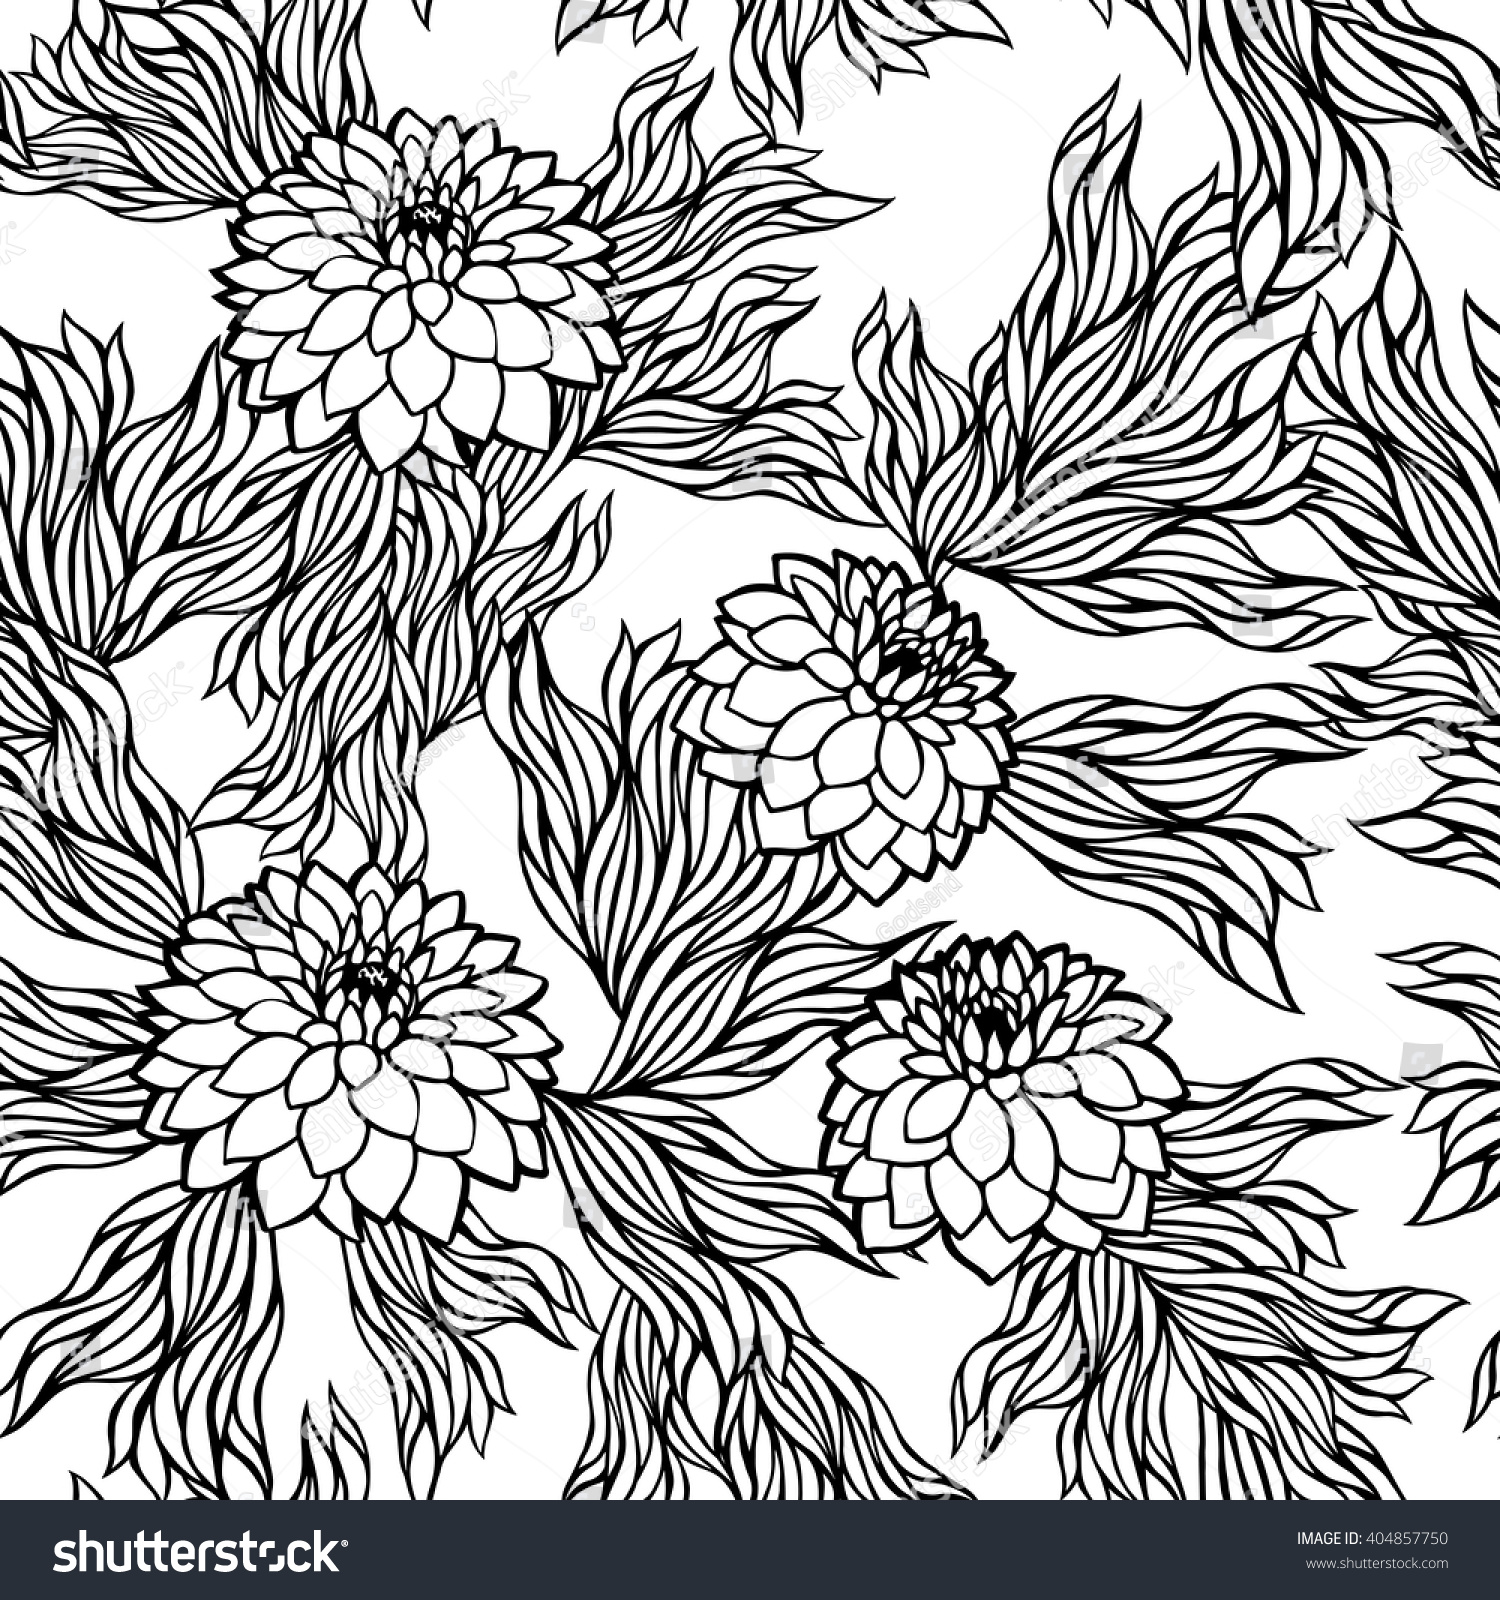 Pink floral seamless vector background floral hrysanthemum seamless - Vector Seamless Floral Pattern Black And White Monochrome In Retro Vintage Style Aster Peony